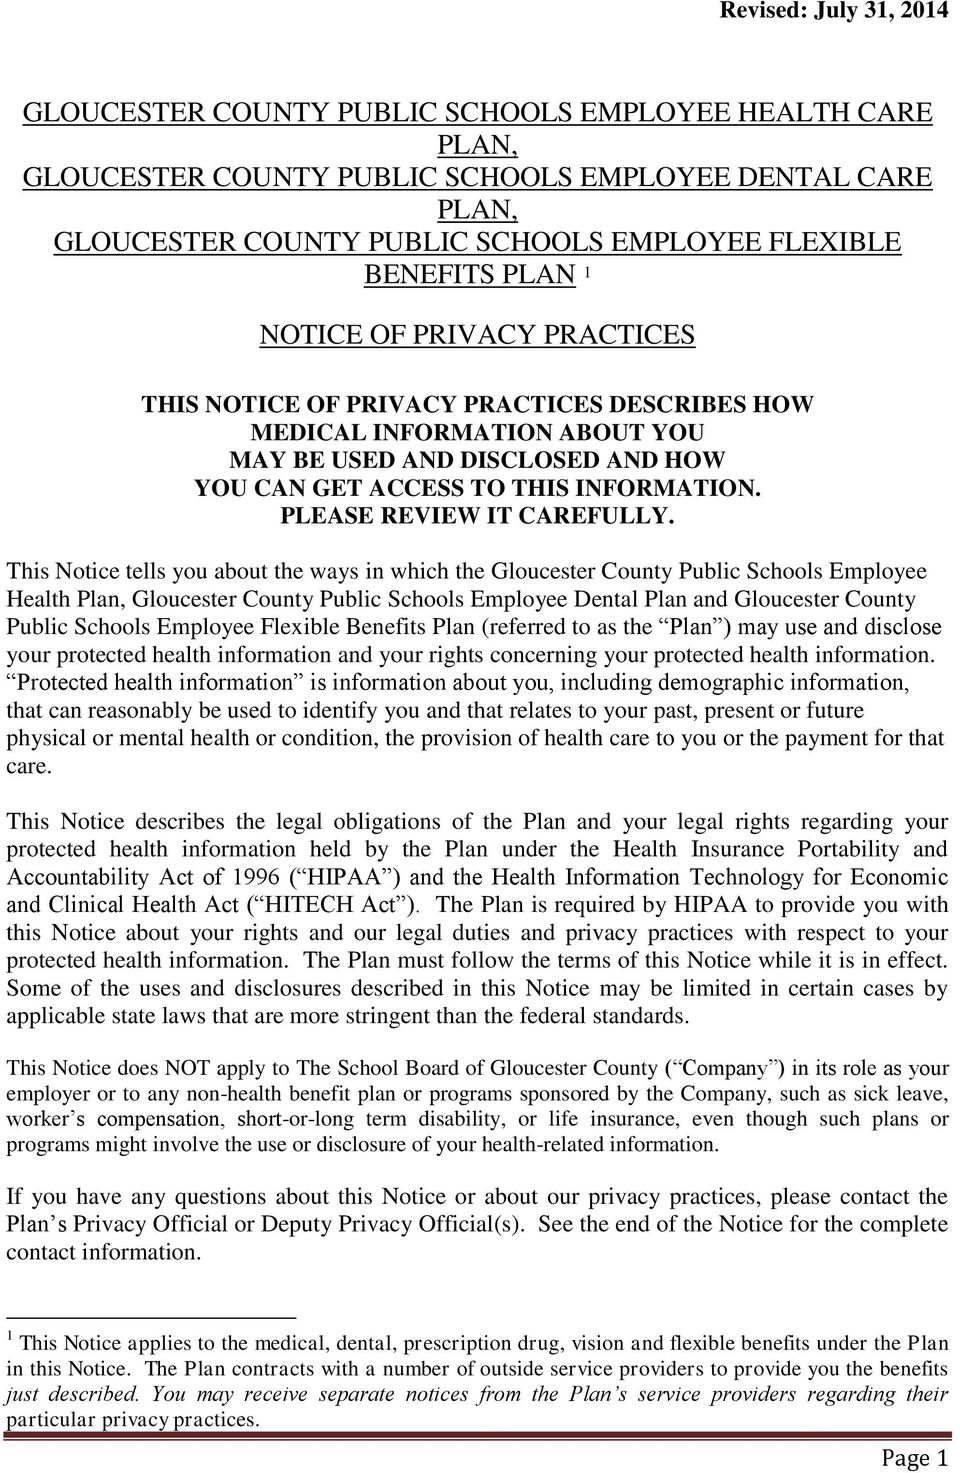 This Notice tells you about the ways in which the Gloucester County Public Schools Employee Health Plan, Gloucester County Public Schools Employee Dental Plan and Gloucester County Public Schools